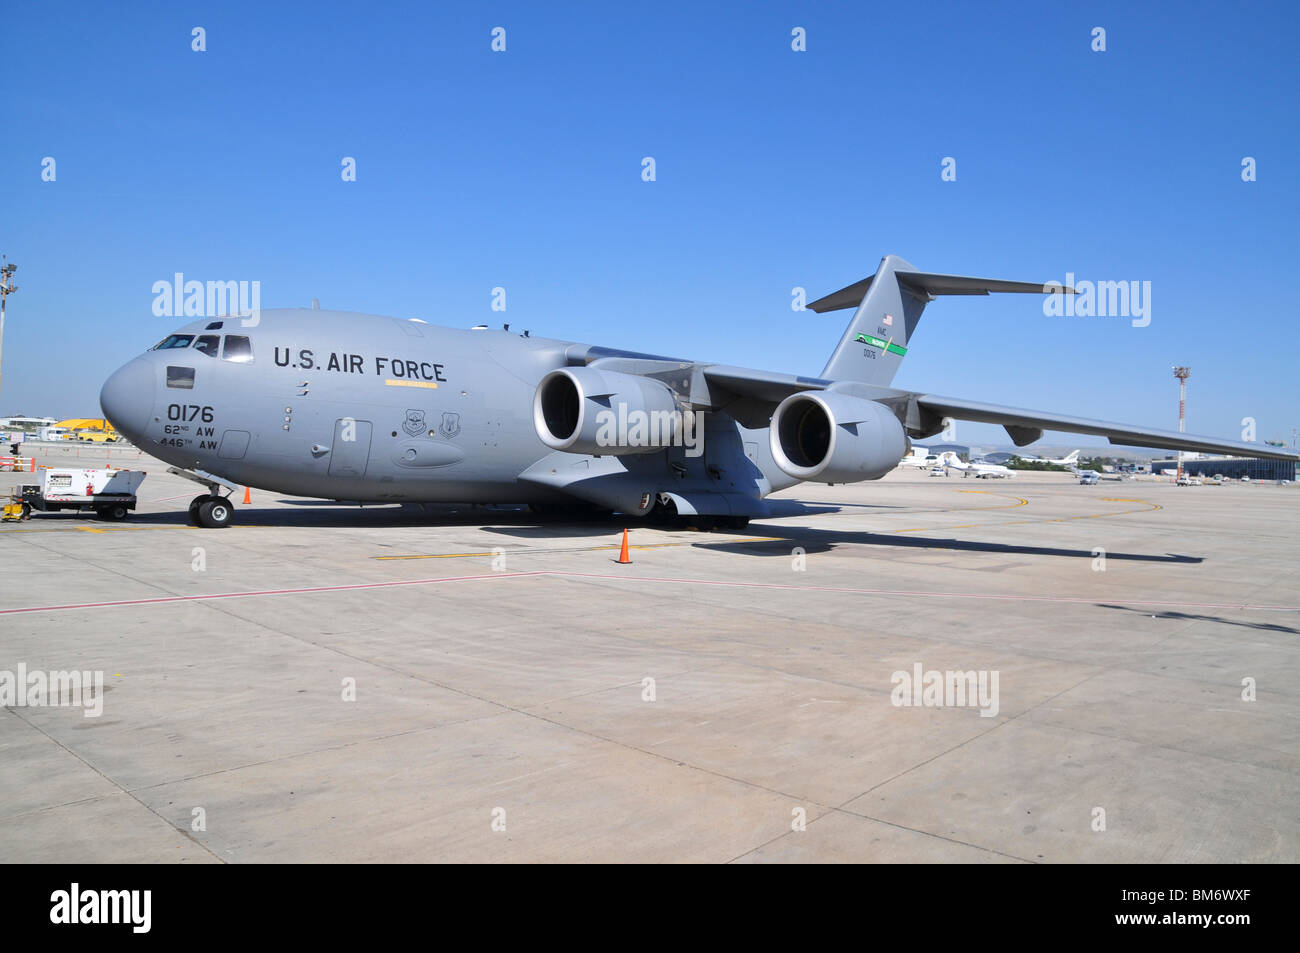 US Air Force Boeing (formerly McDonnell Douglas) C-17 Globemaster III a large military transport aircraft. - Stock Image